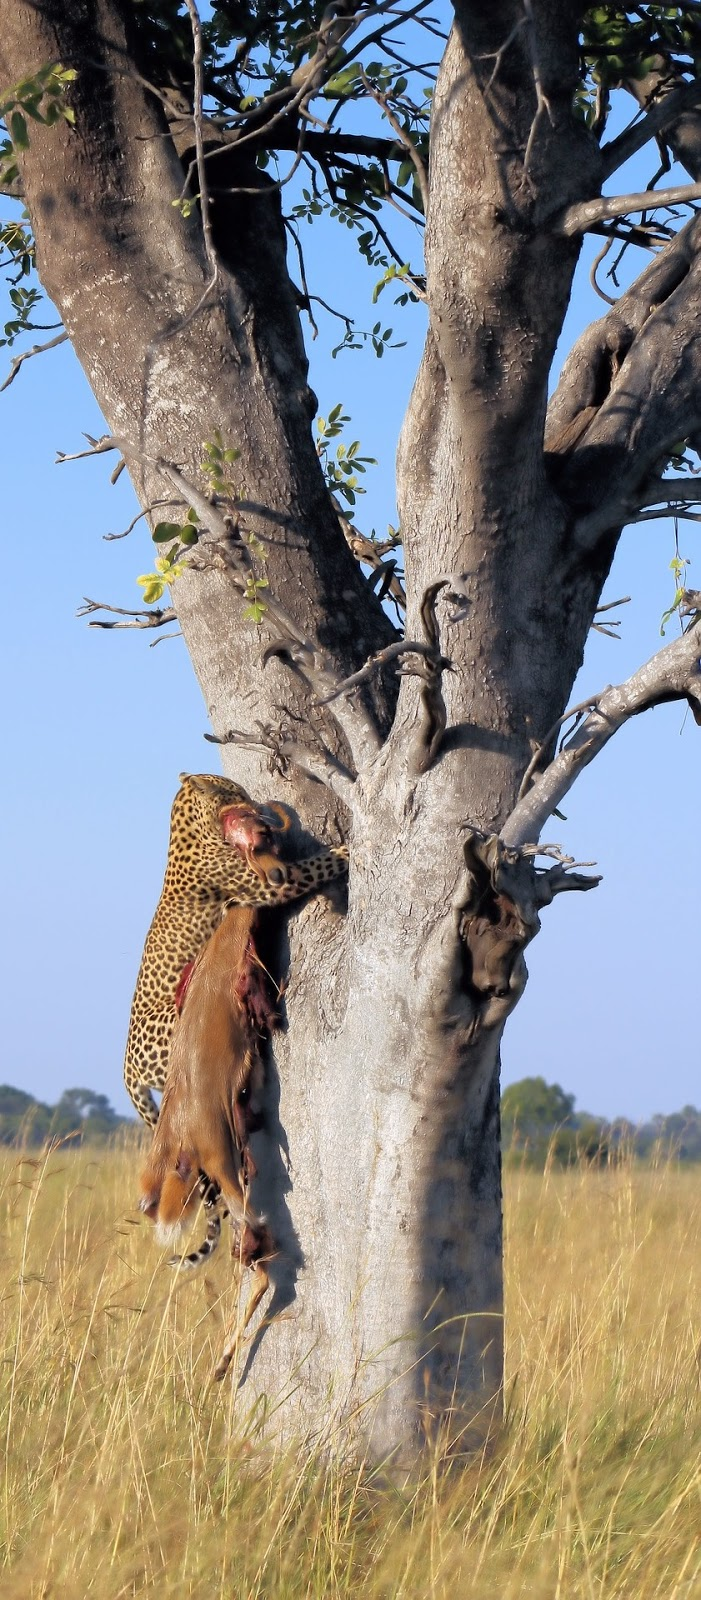 A leopard climbing a tree with it's killed prey